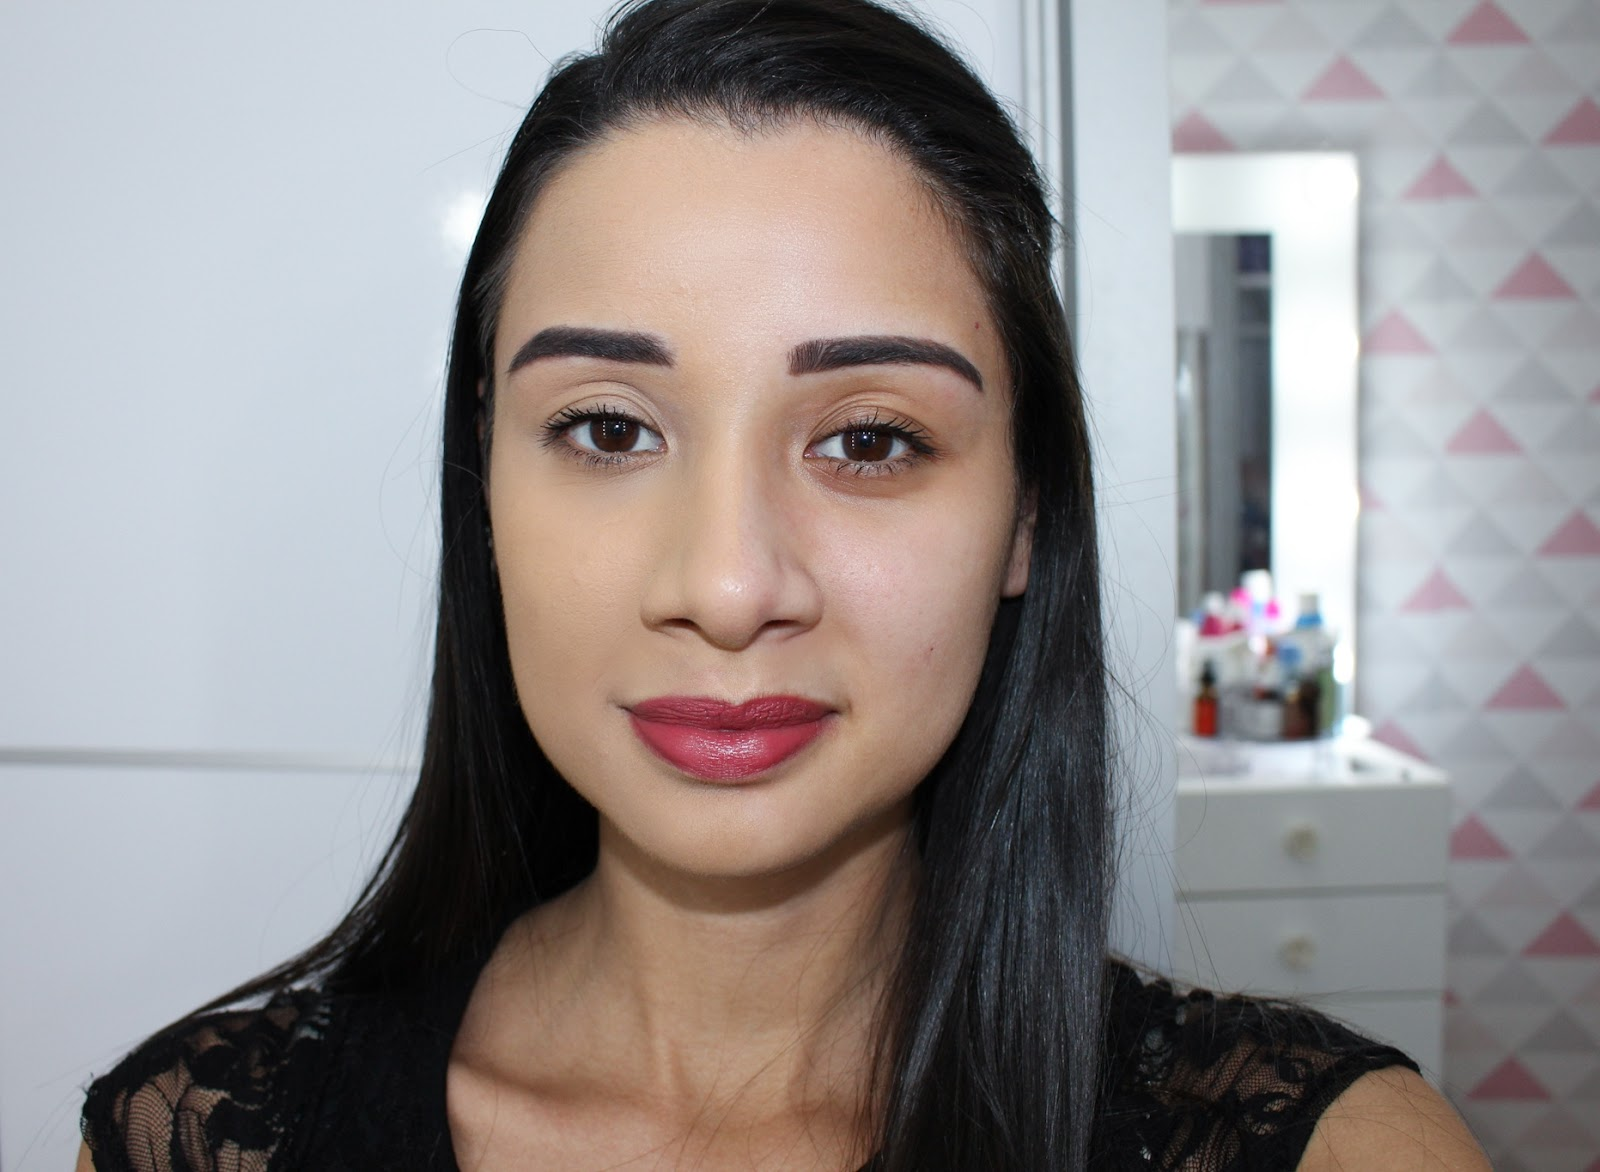 Resenha: Nova base Matte Real Color Trend da Avon